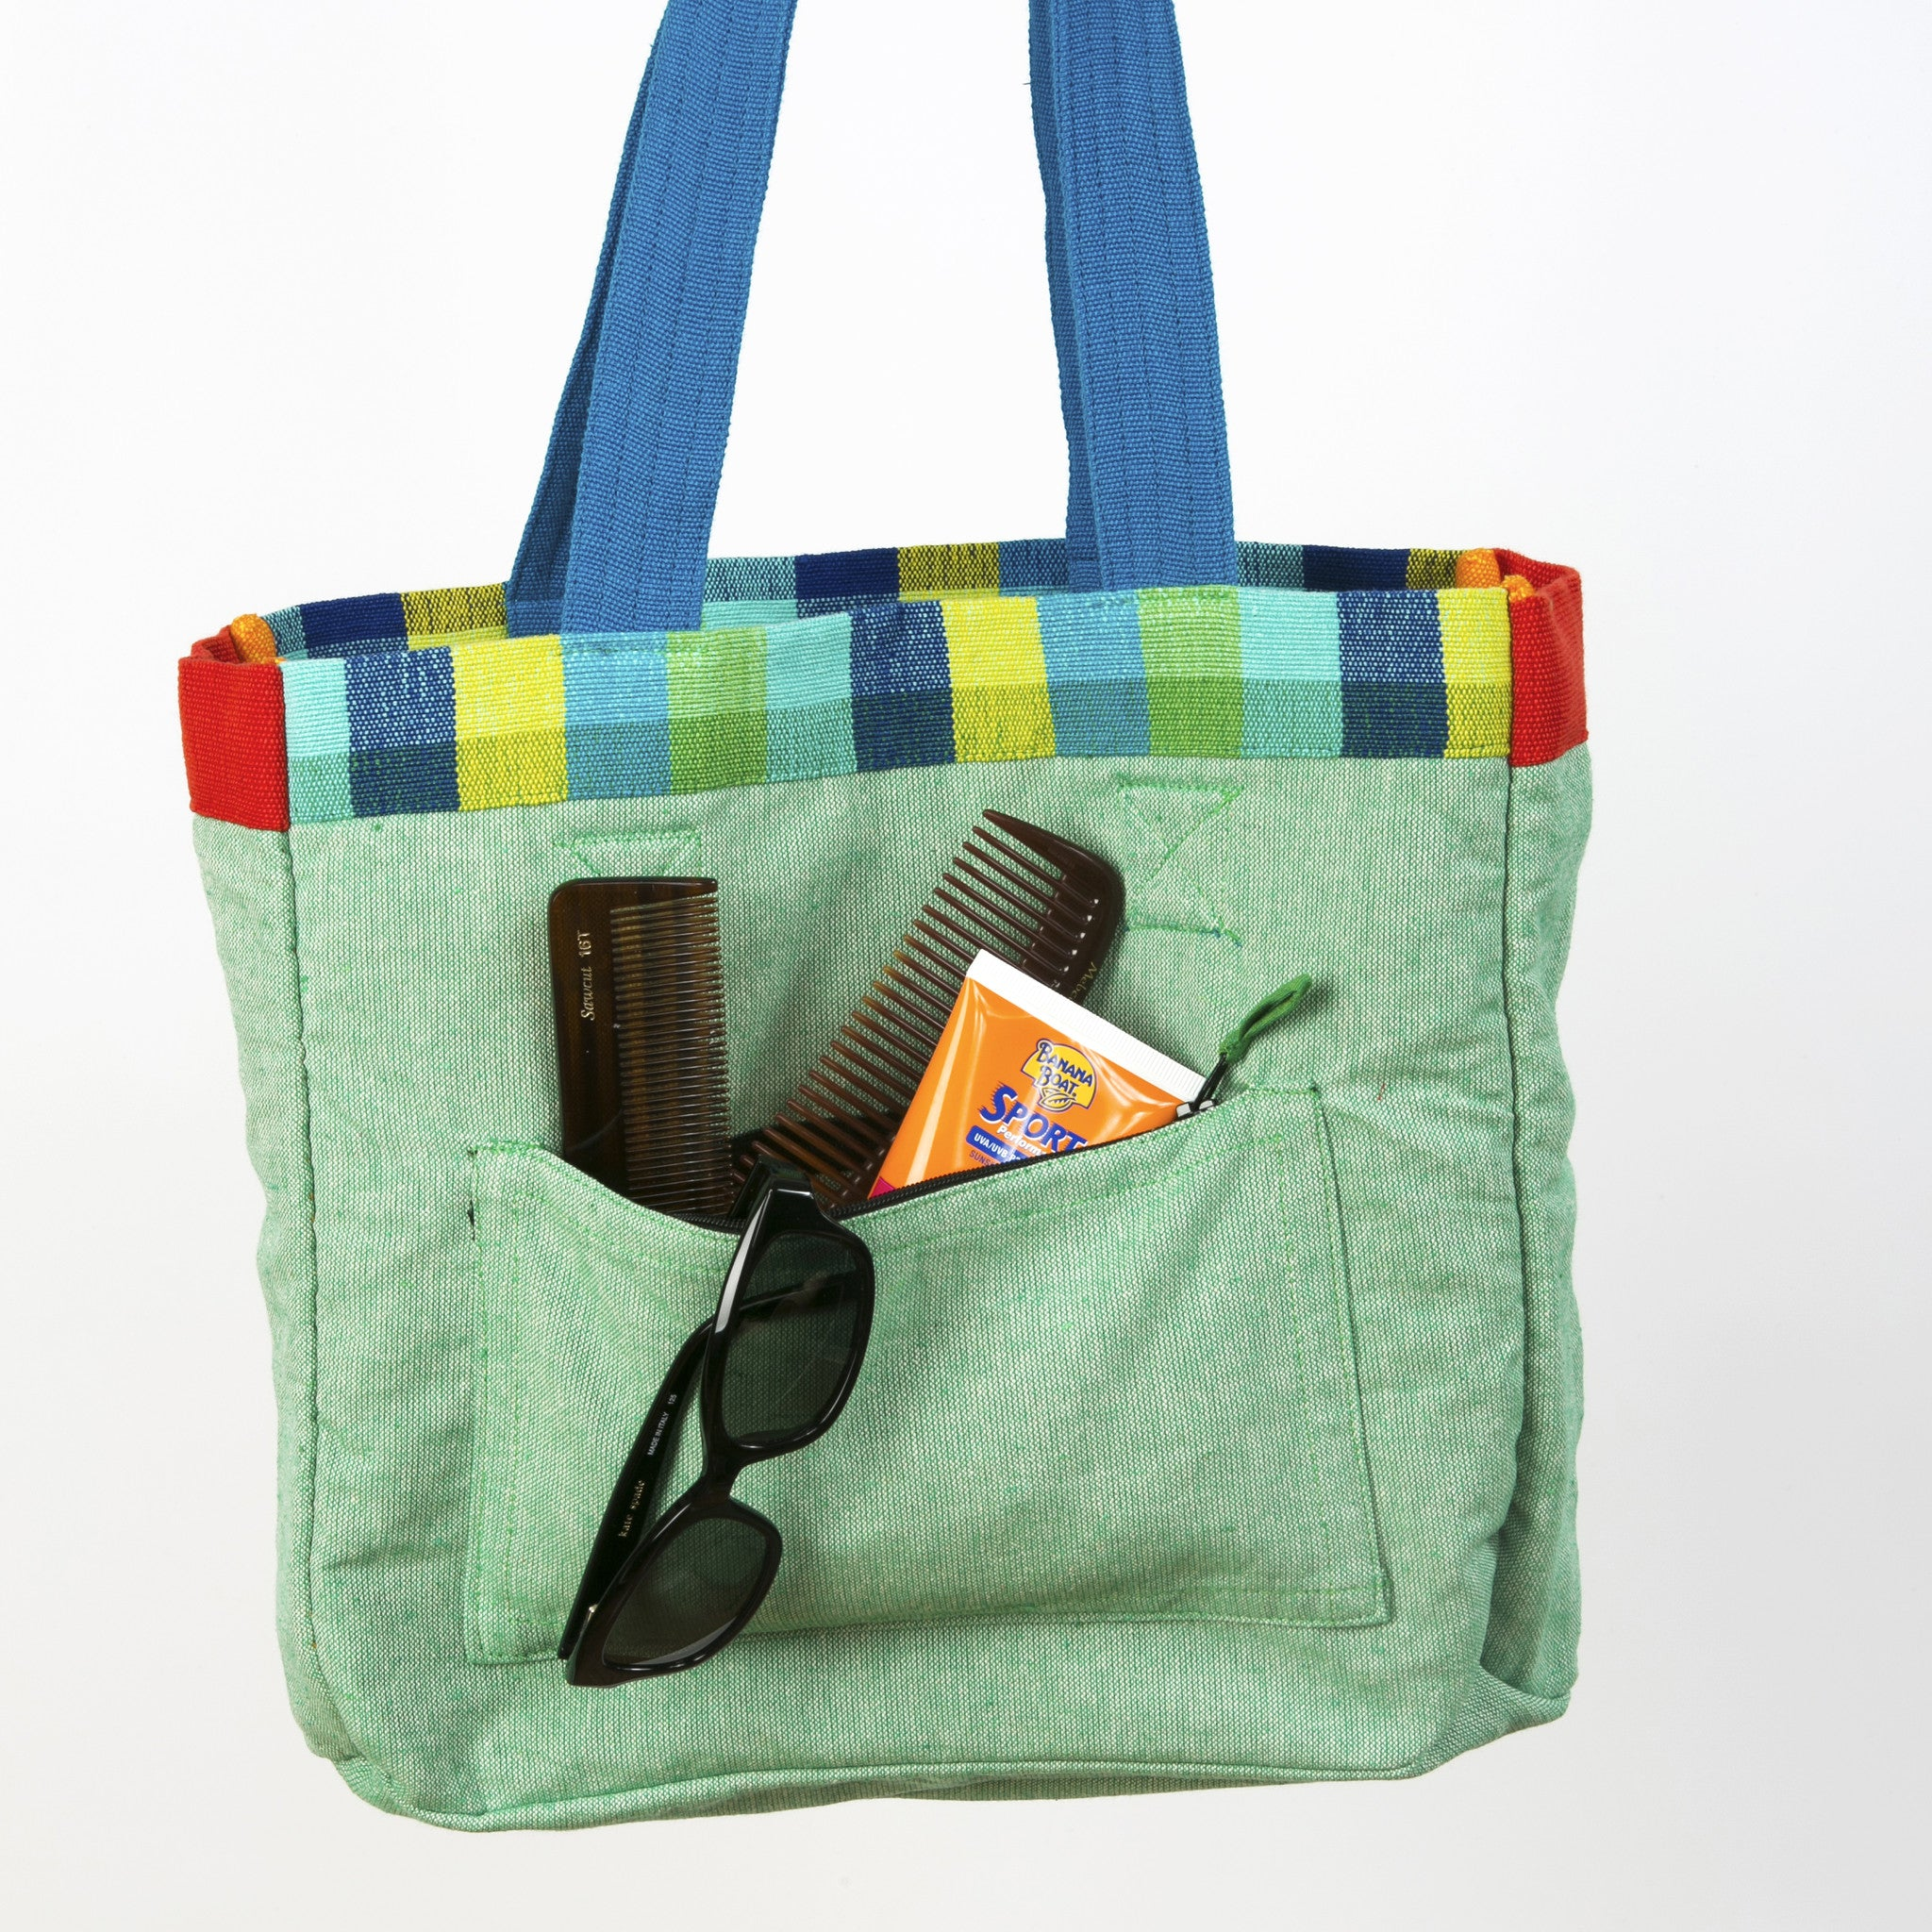 The Easy Breezy Tote - Inside view (sample fabric shown)